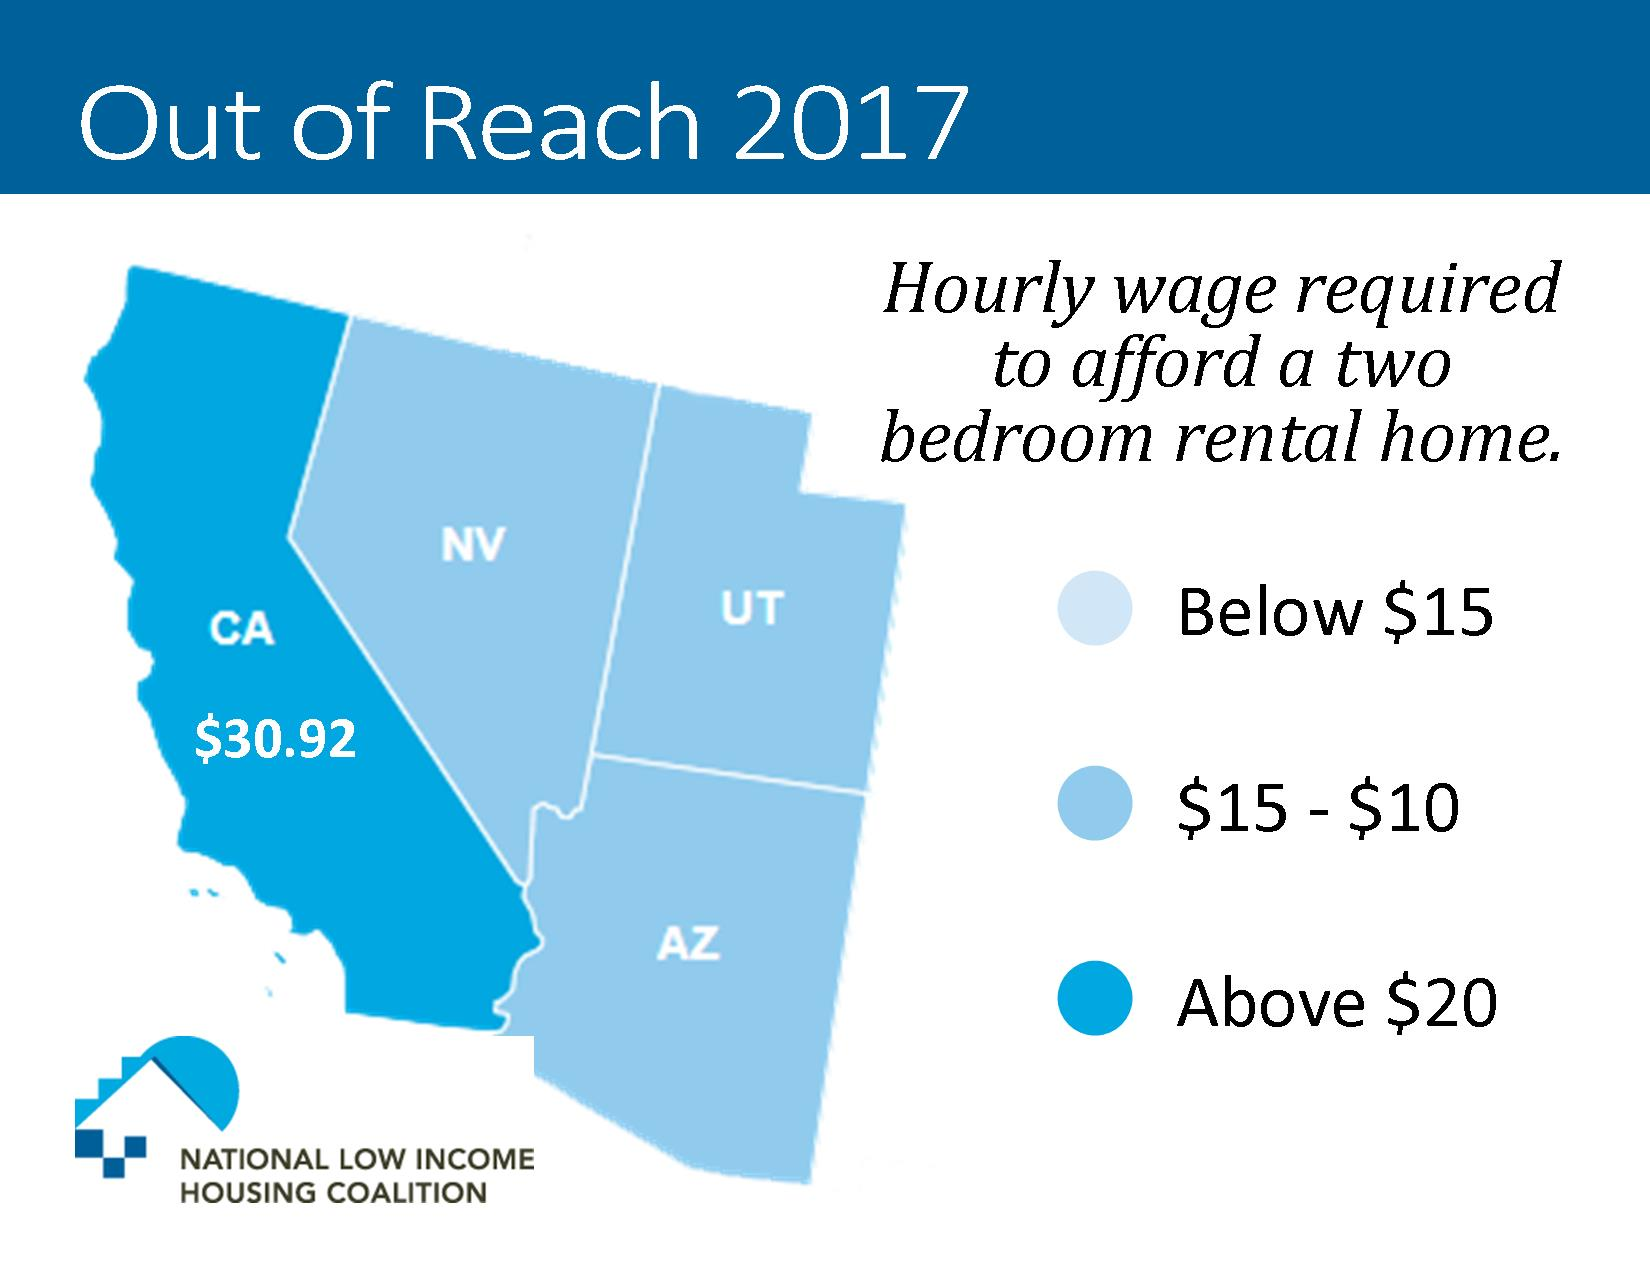 Image_Graphic_OOR_California_Hourly Wage.jpg